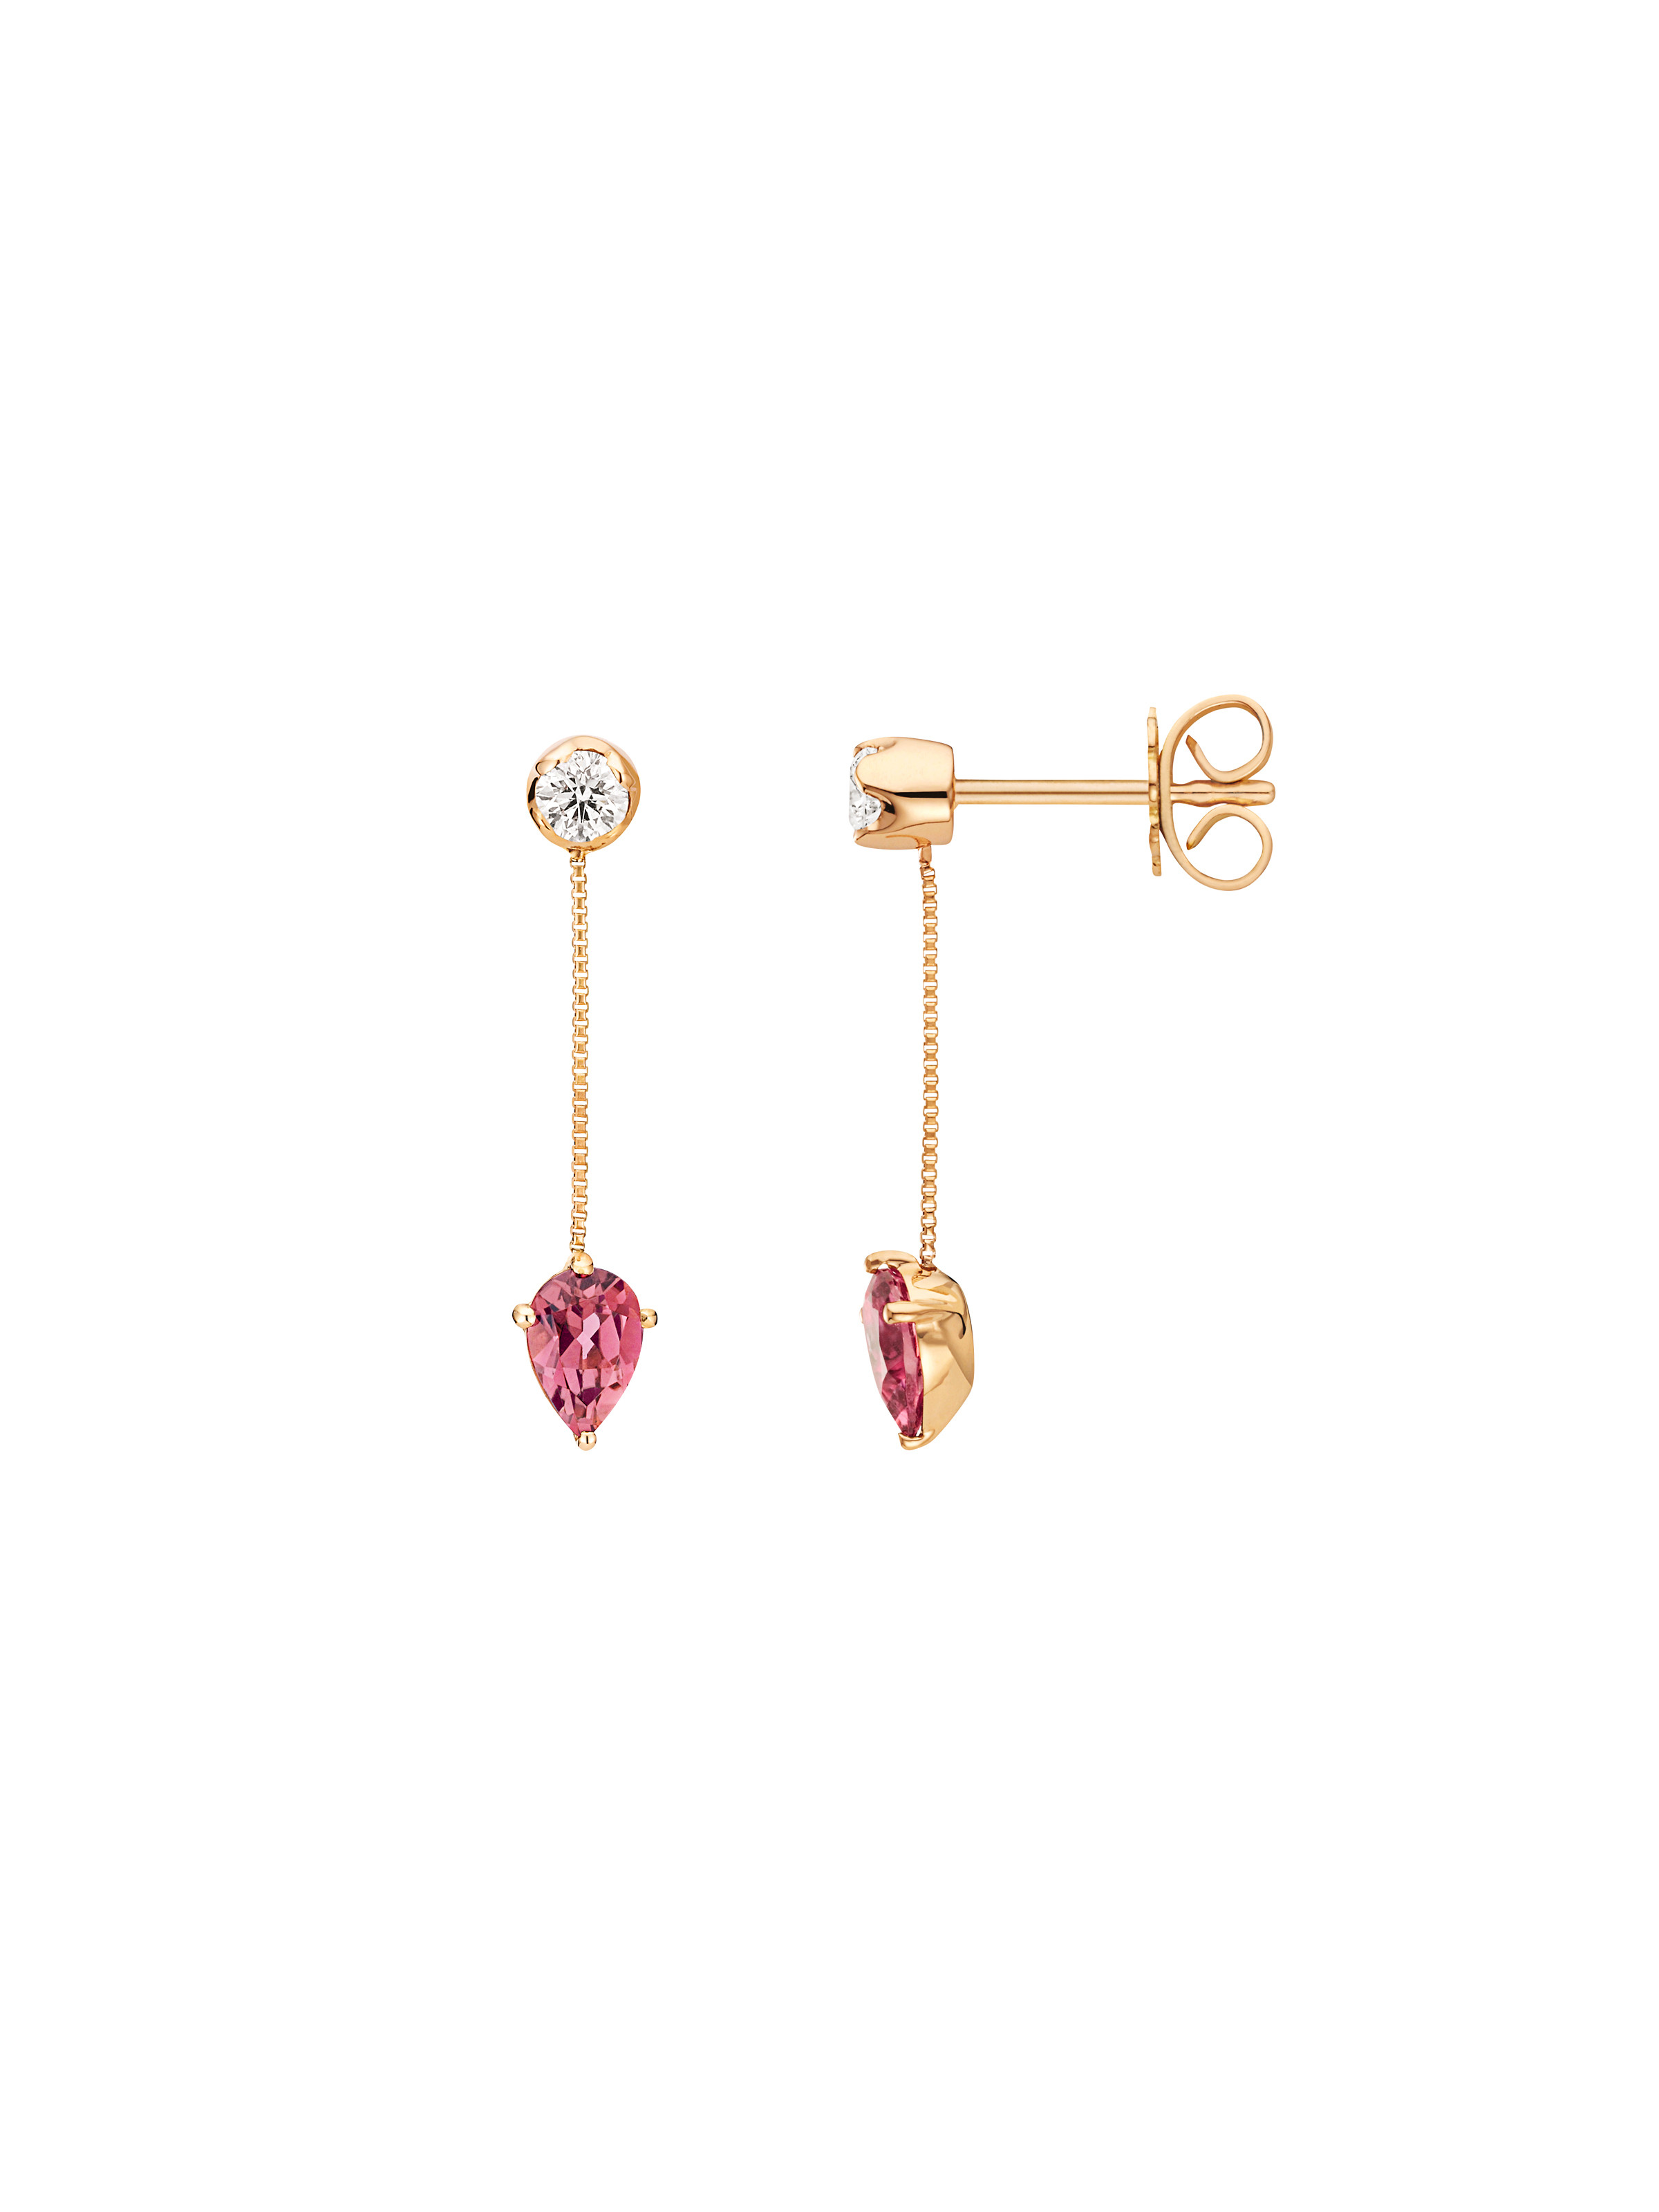 Daily Colors earrings